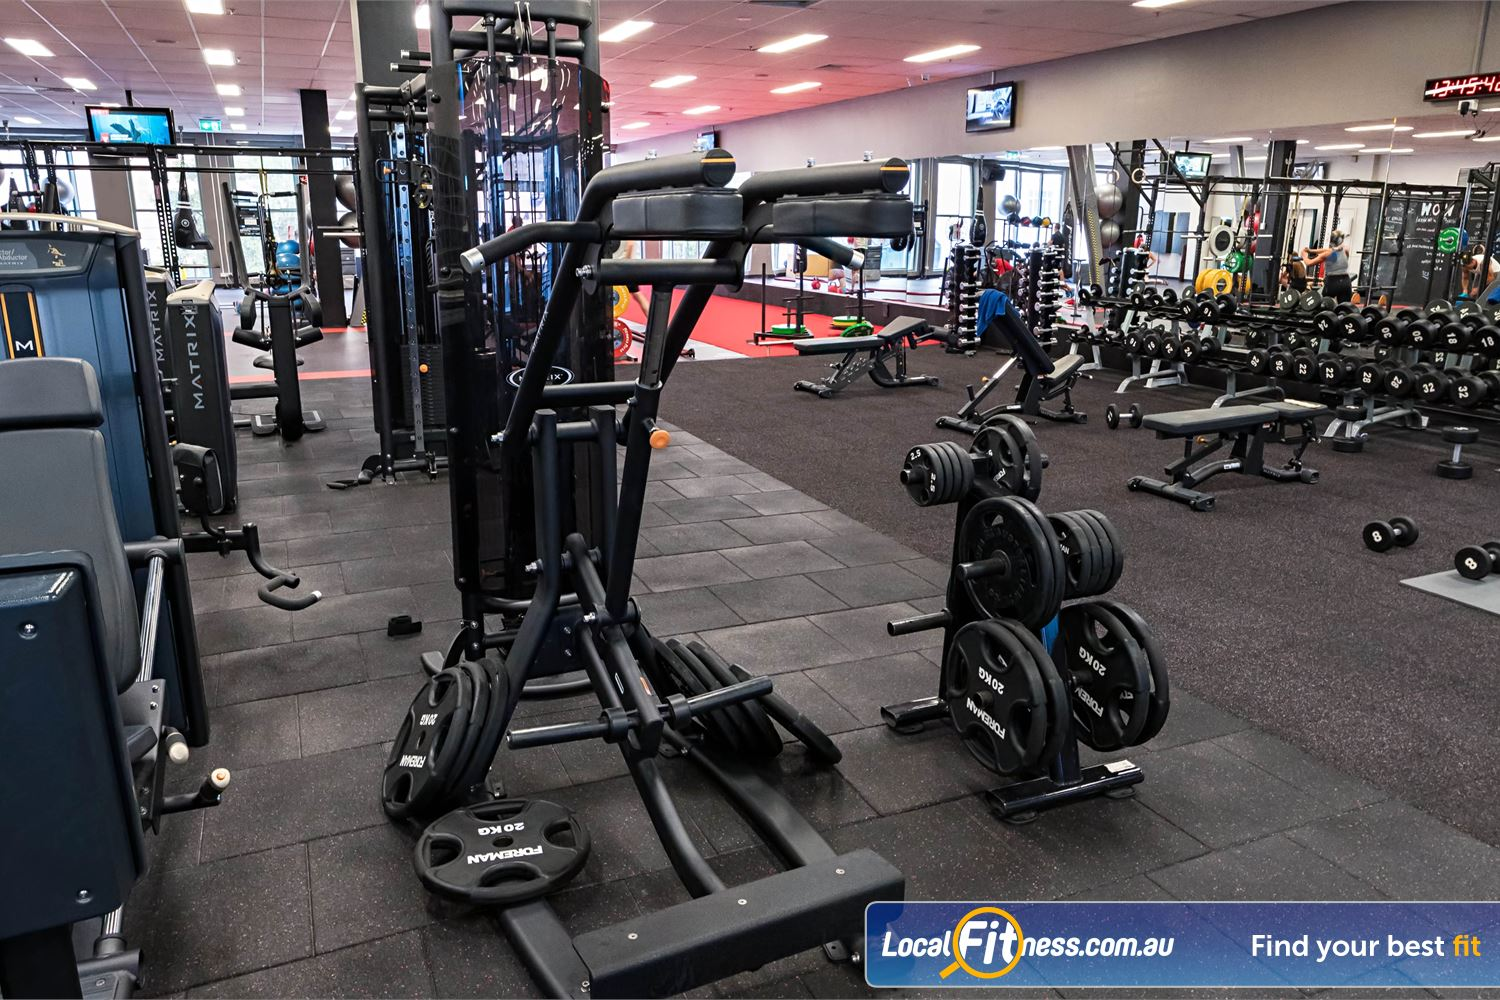 Fitness First Platinum Spring St Near Queens Park Our Bondi gym provides a fully equipped free-weights area.